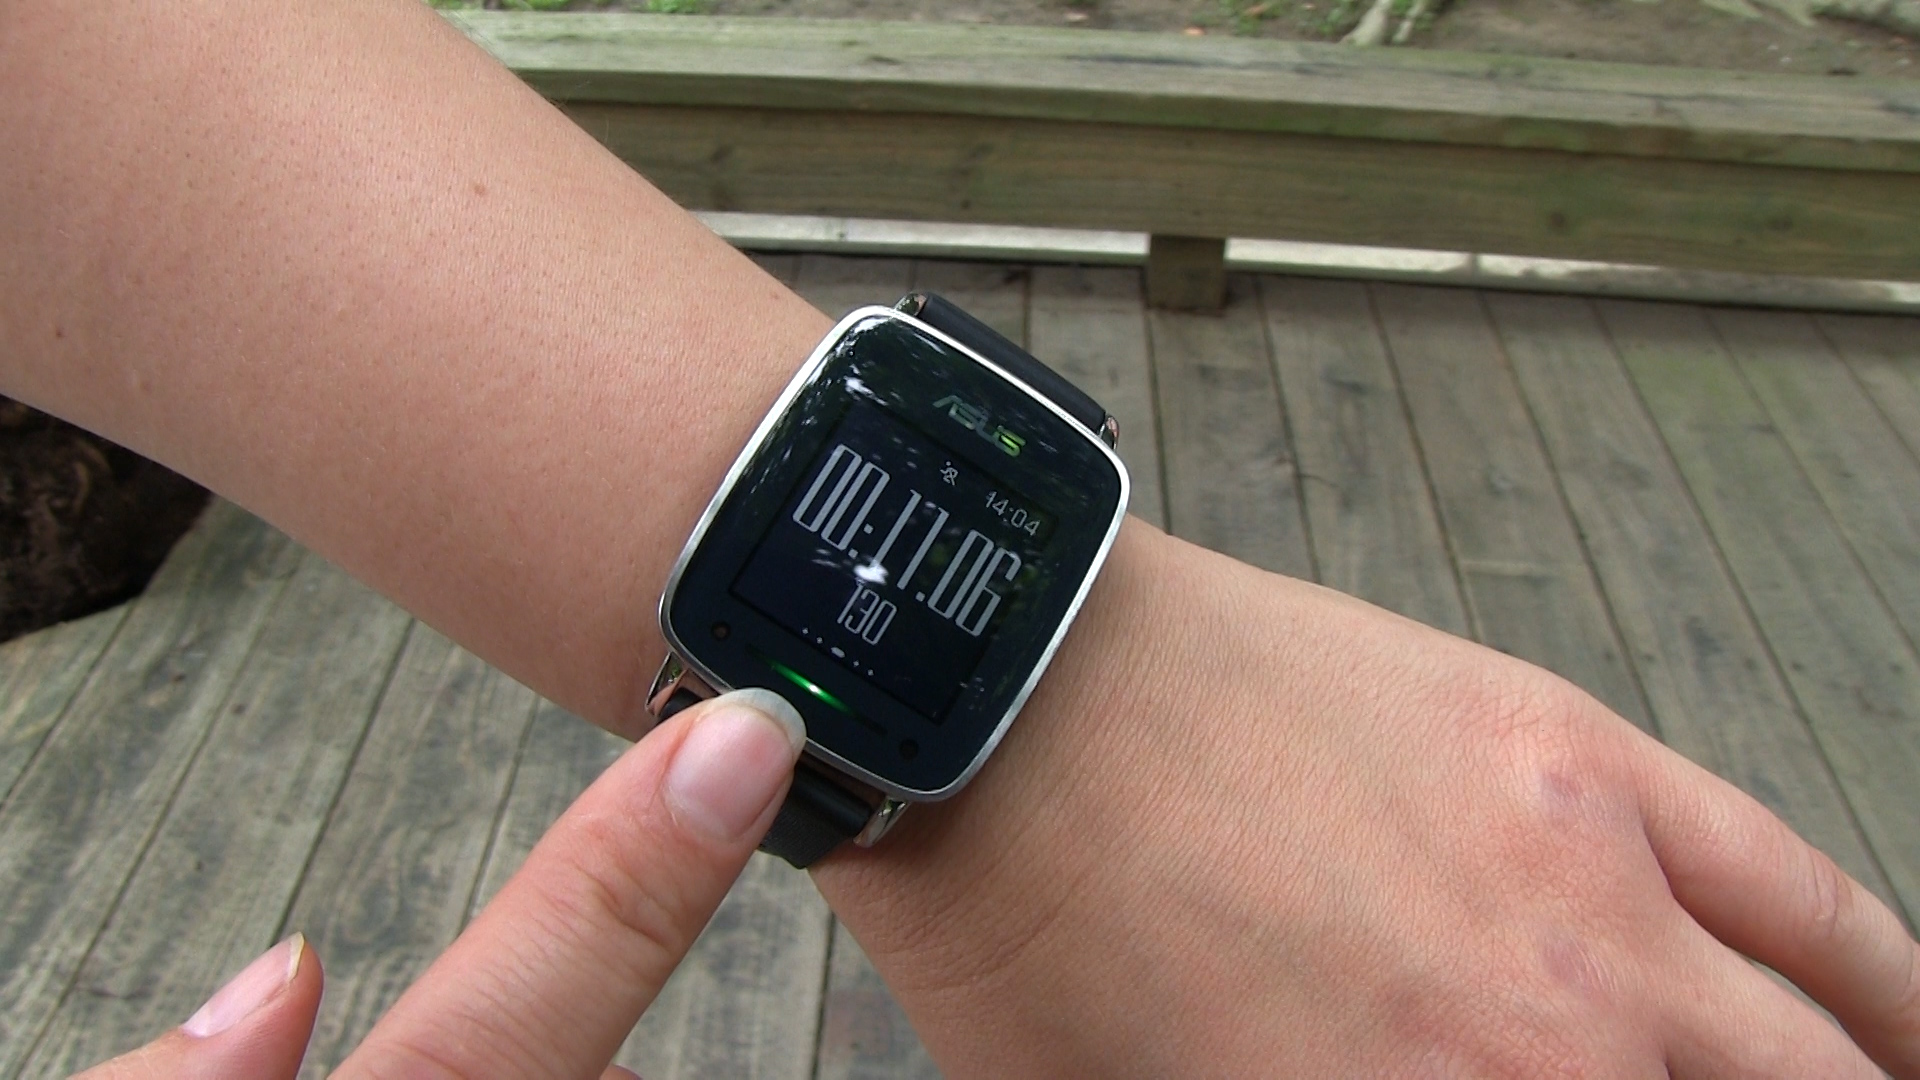 ASUS VivoWatch: Bringing Good Looks to Fitness Tracking